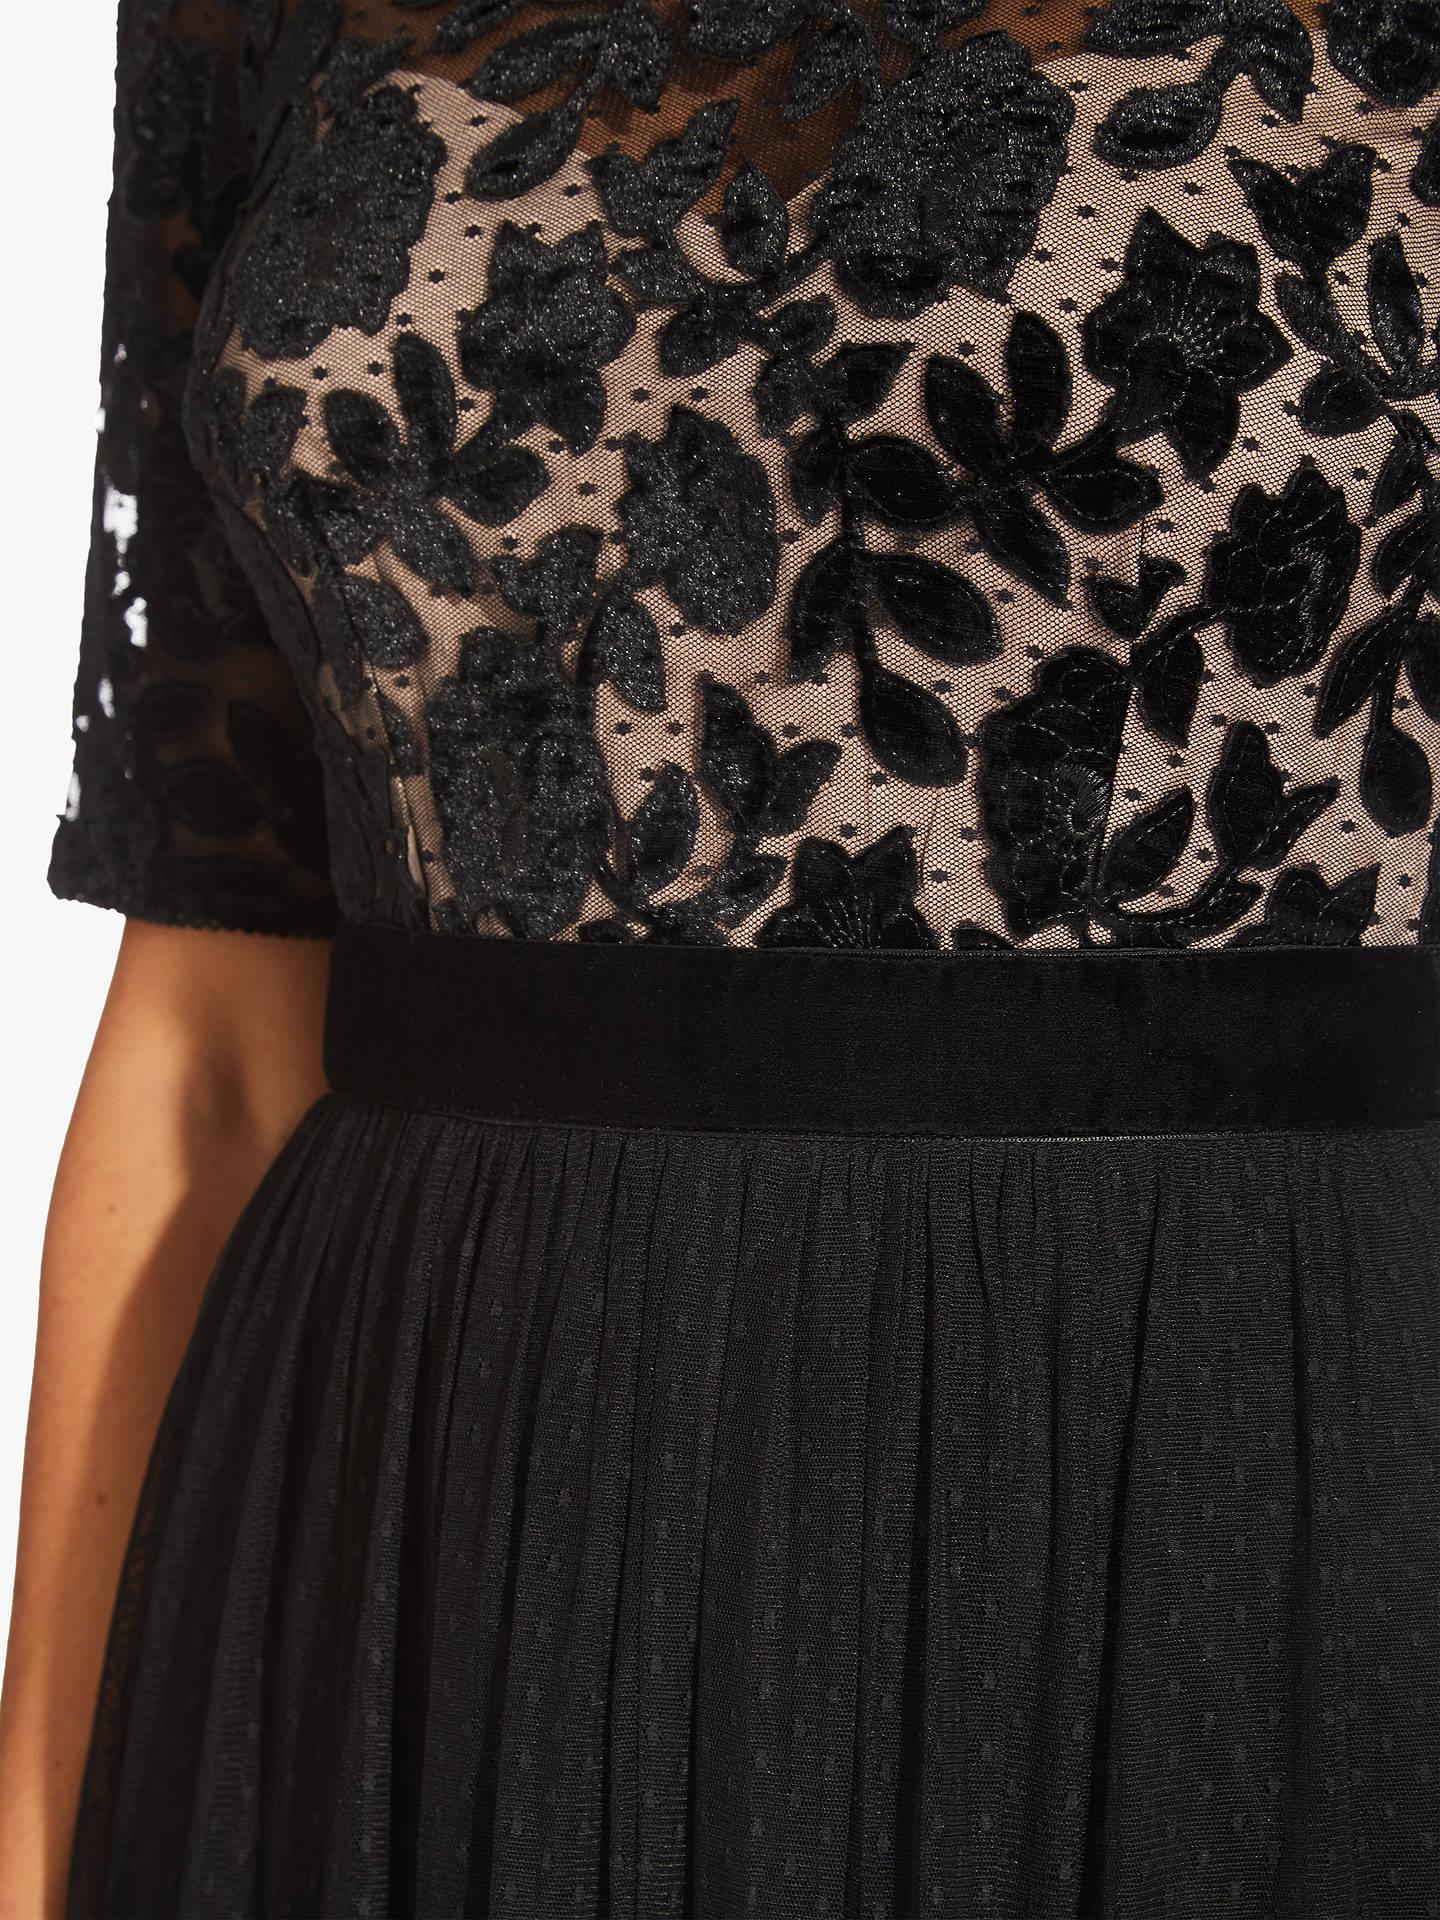 Buy Adrianna Papell Velvet Tulle Dress, Black/Rose Gold, 6 Online at johnlewis.com